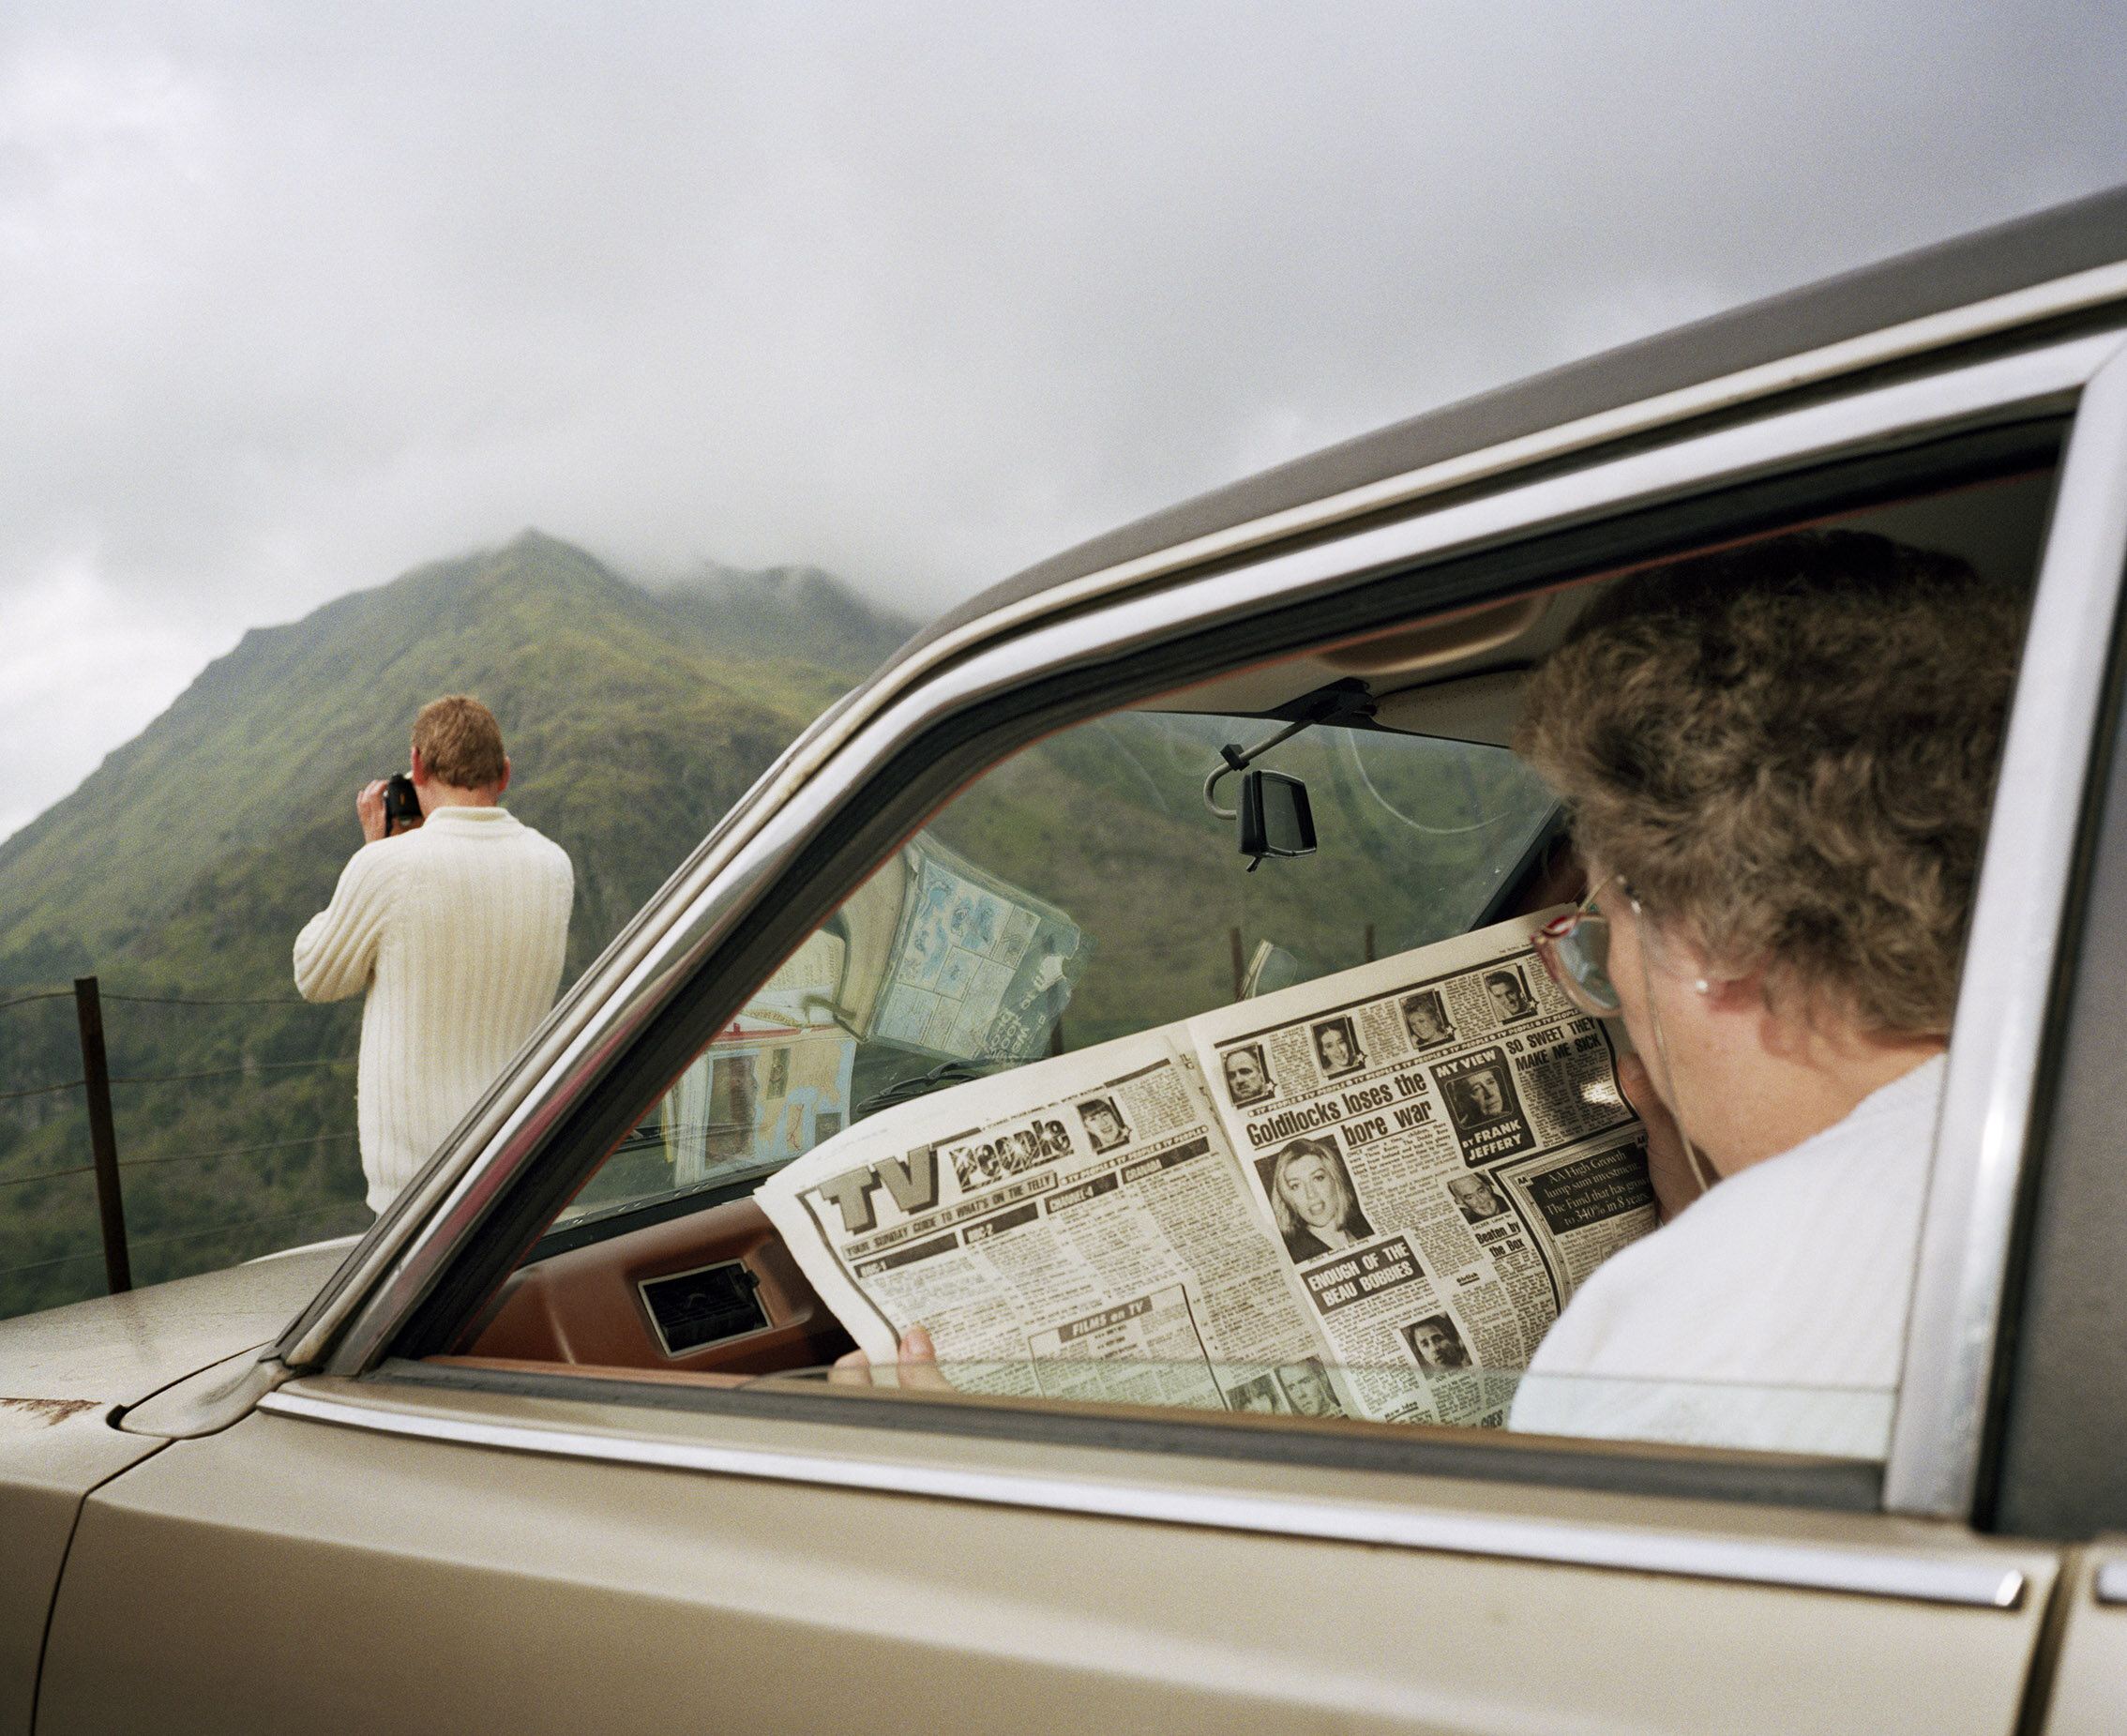 Snowdonia, Wales, 1989. From 'Home and Abroad'. © Martin Parr / Magnum Photos